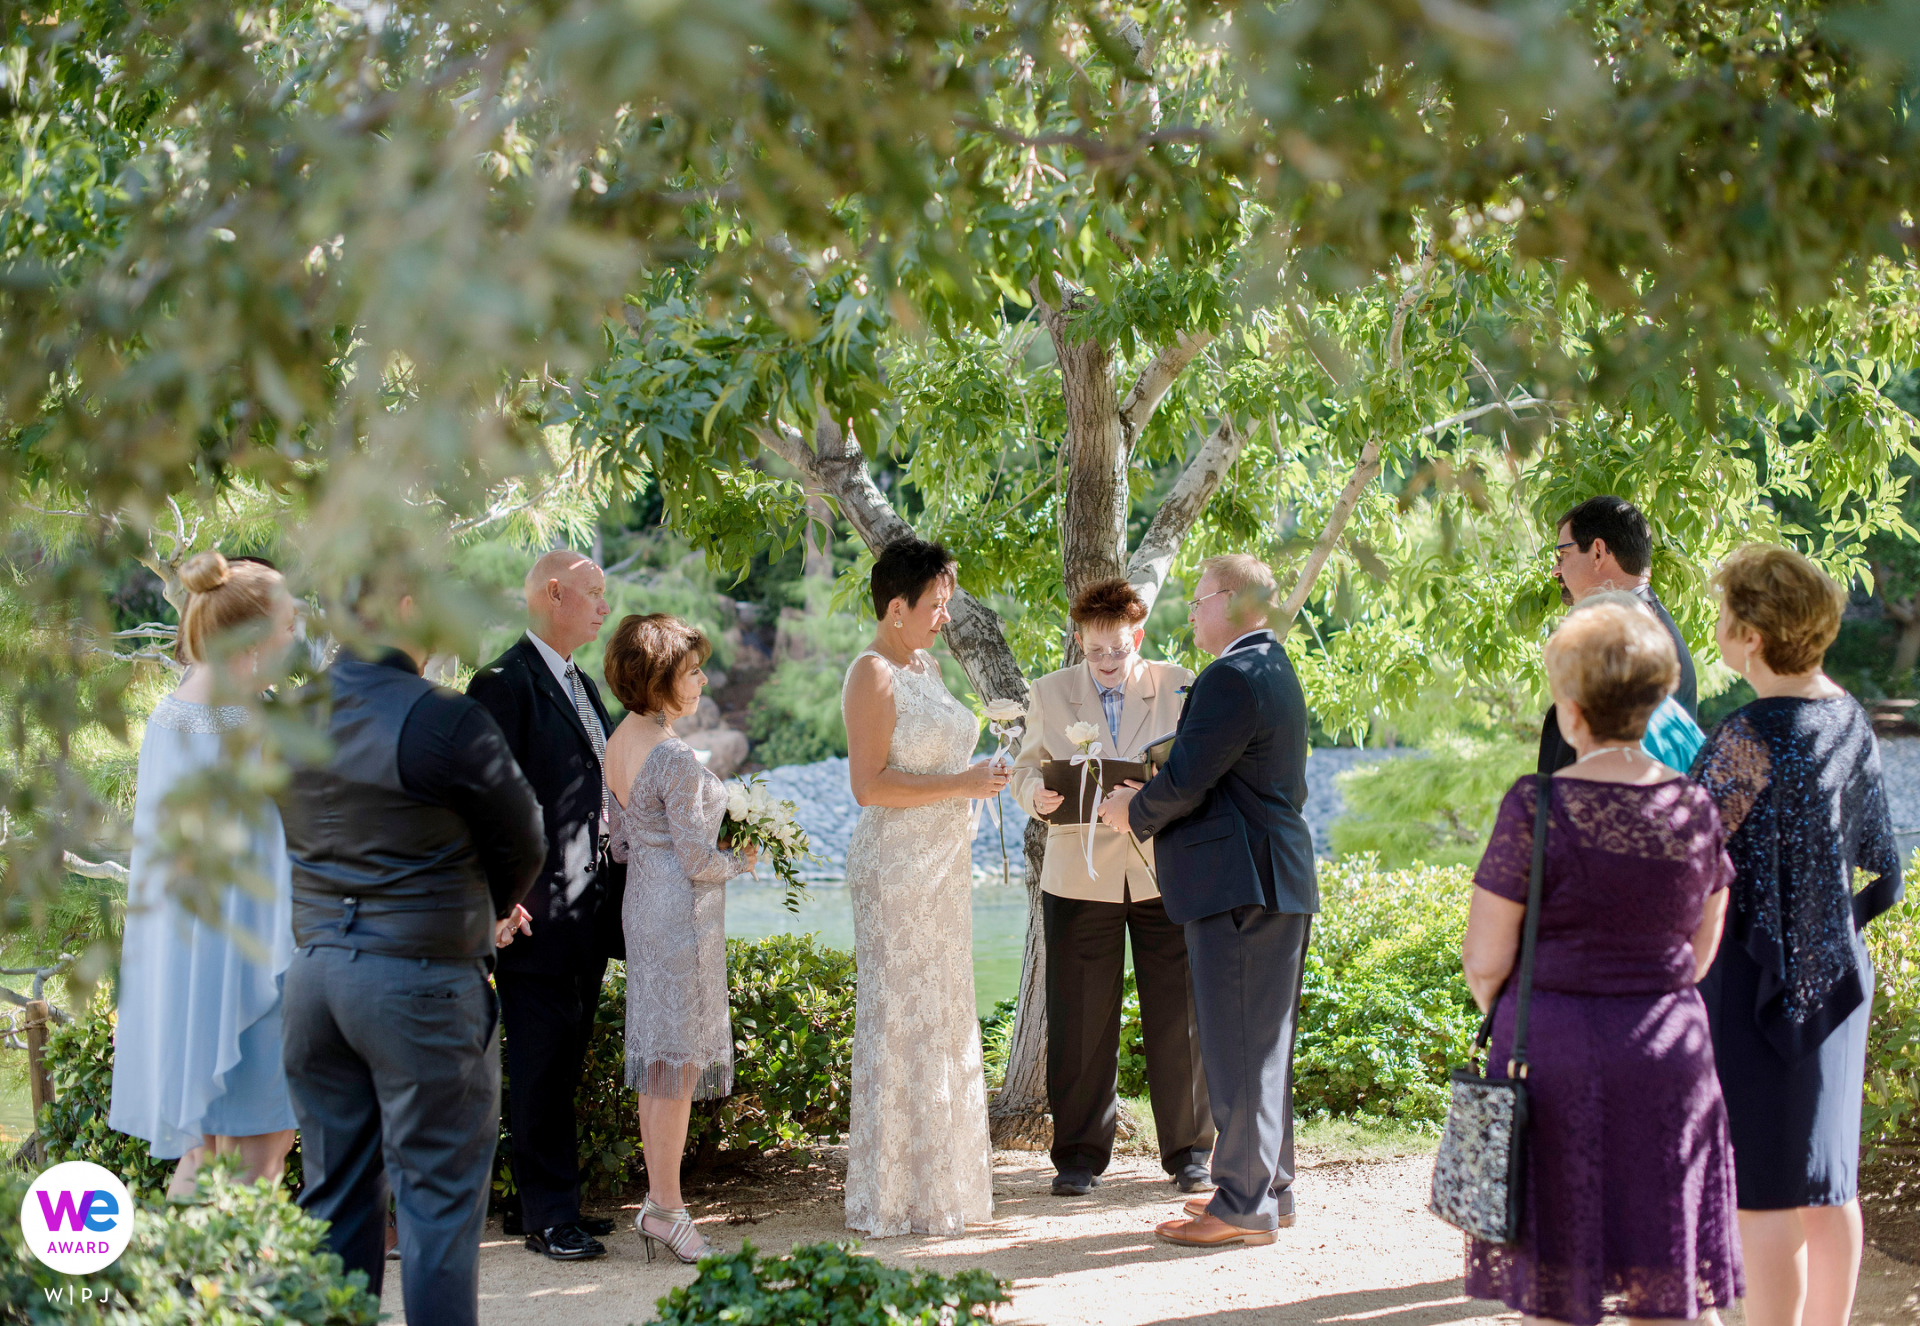 Japanese Friendship Garden, Phoenix, AZ Elopement Photo Story | The bride, groom, and guests stand under a tree during the ceremony. The guests watch while the officiant reads aloud